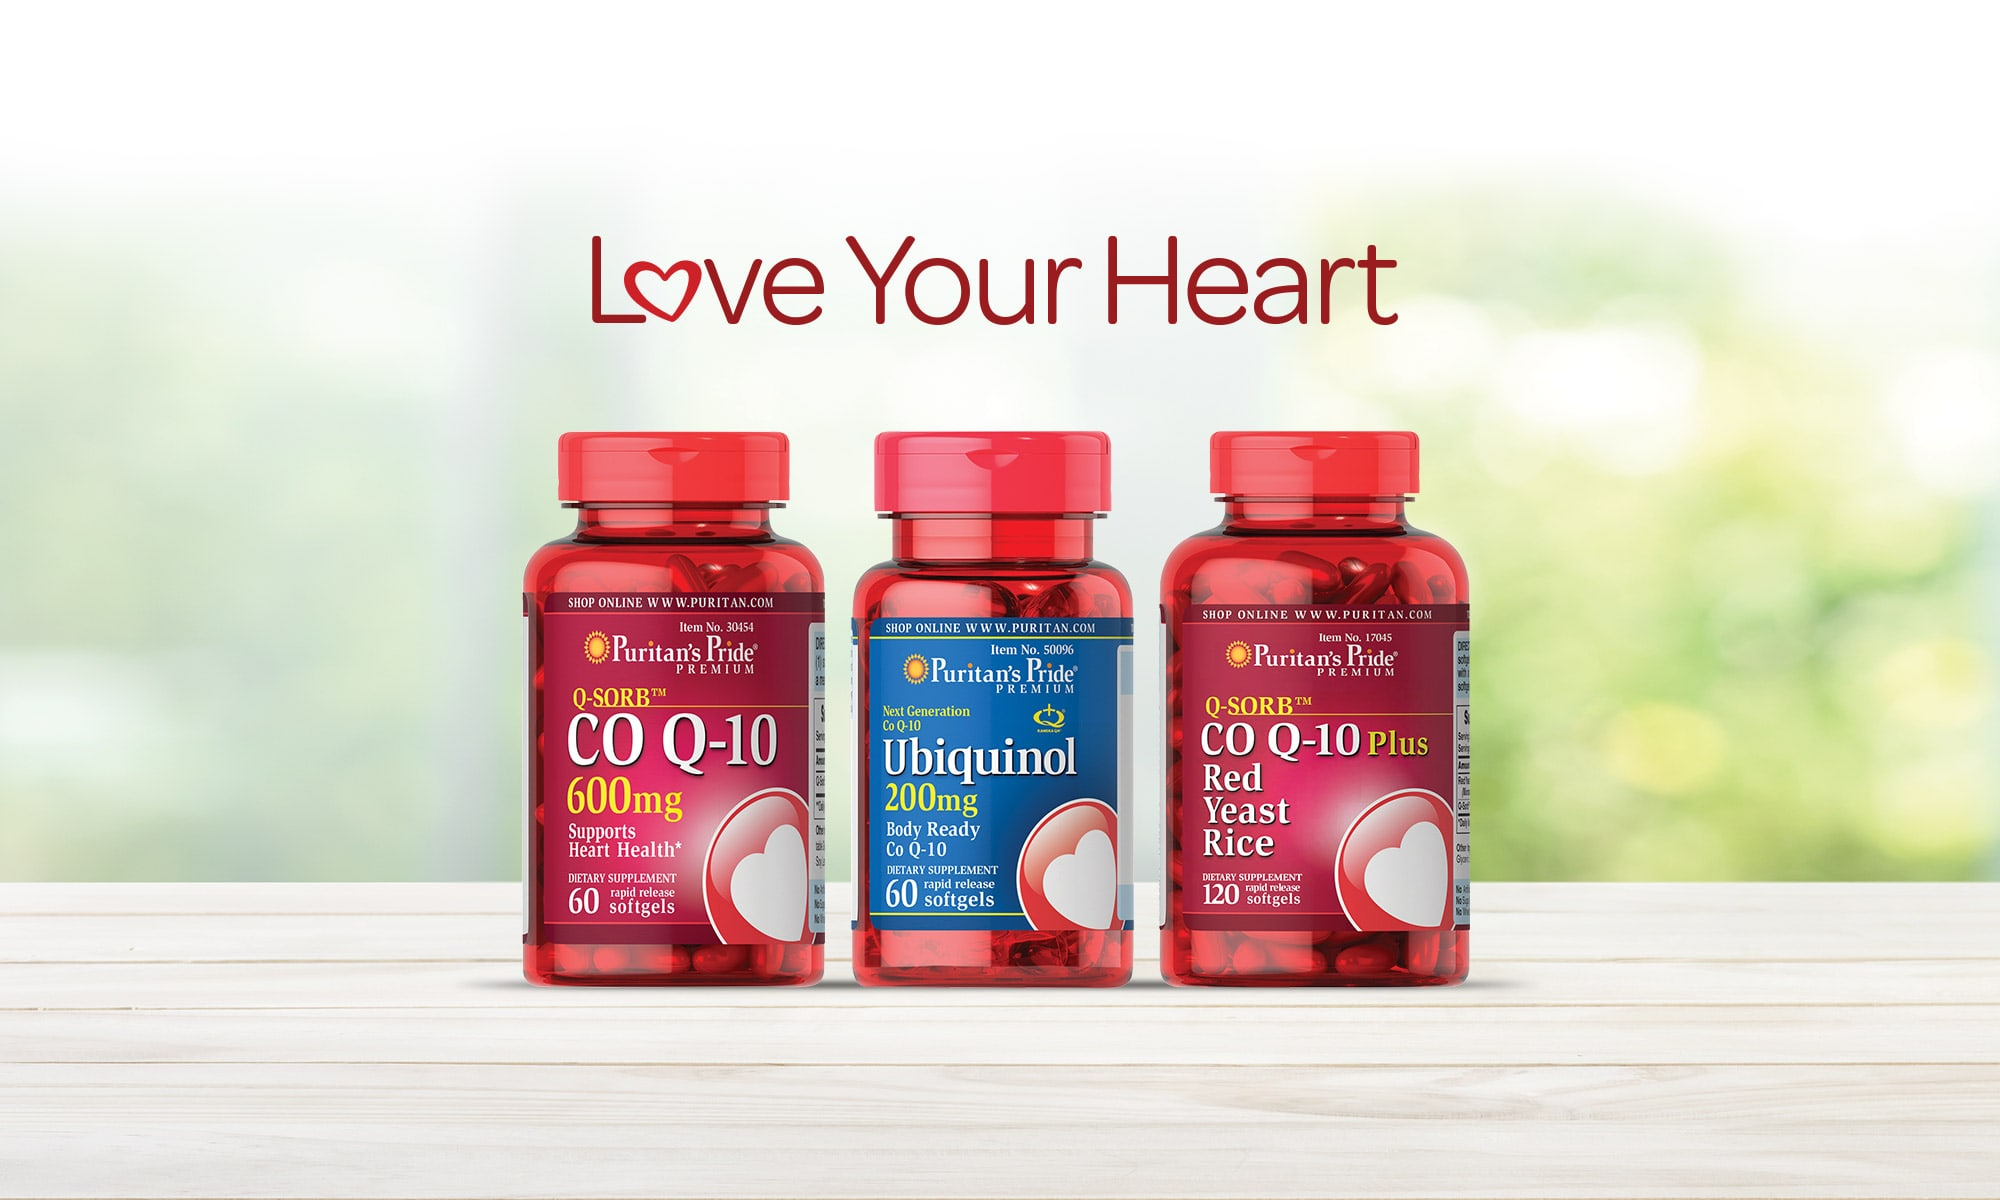 Love Your Heart. Shop All Co-Q10